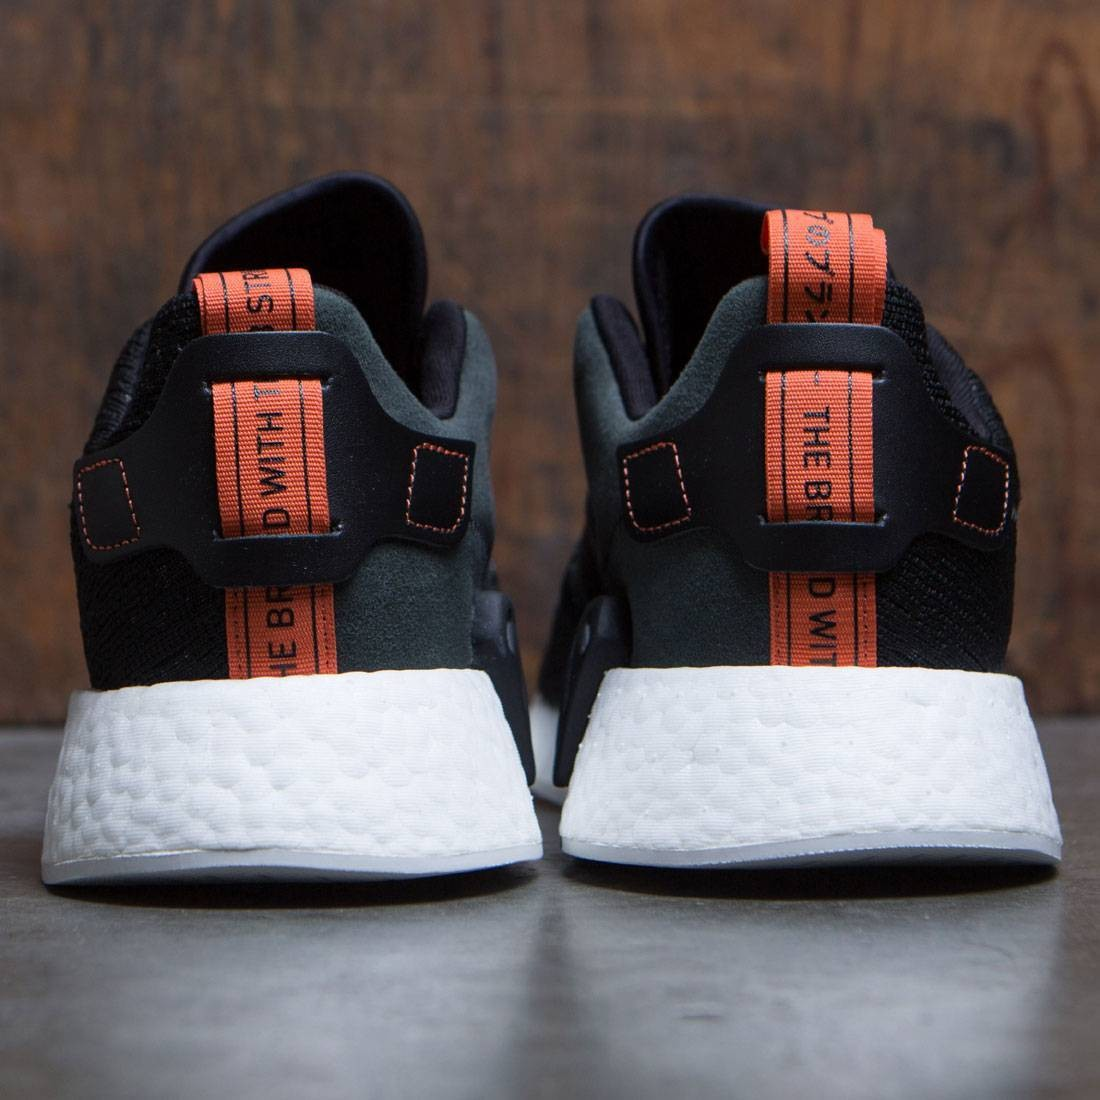 plus récent dfecd ef610 adidas Originals NMD_R2 PK Trainers core black/white Zalando